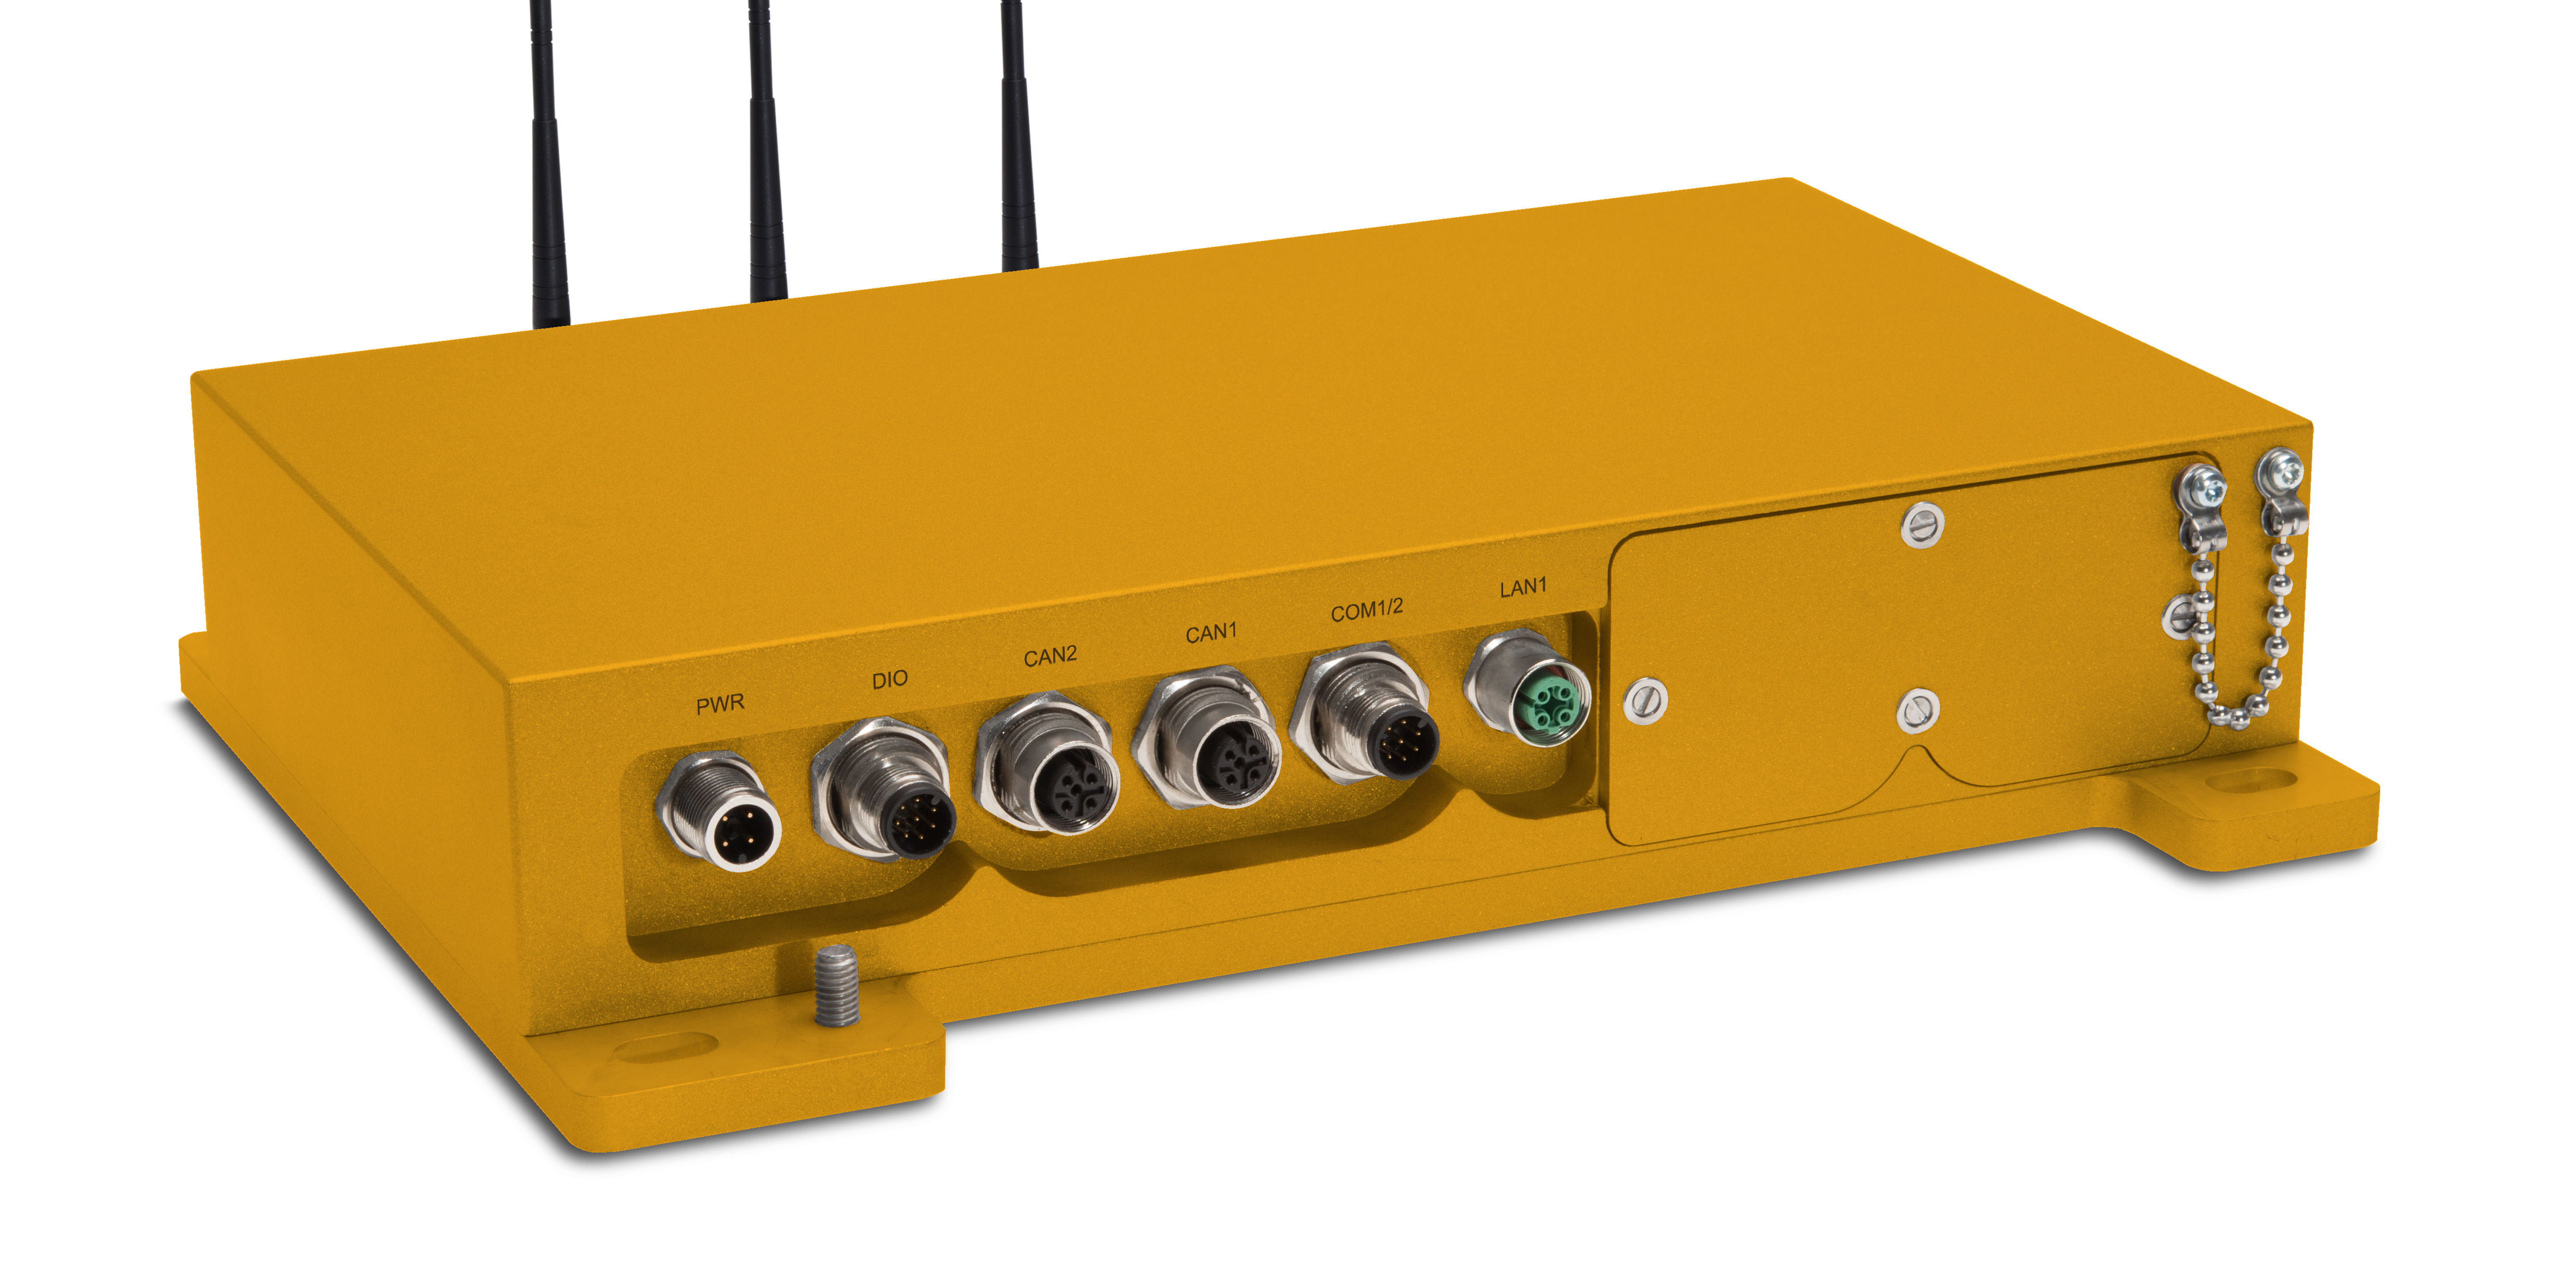 Ruggedized Embedded Box PC for Off-Highway Trucks, Dozers or Track Loaders.